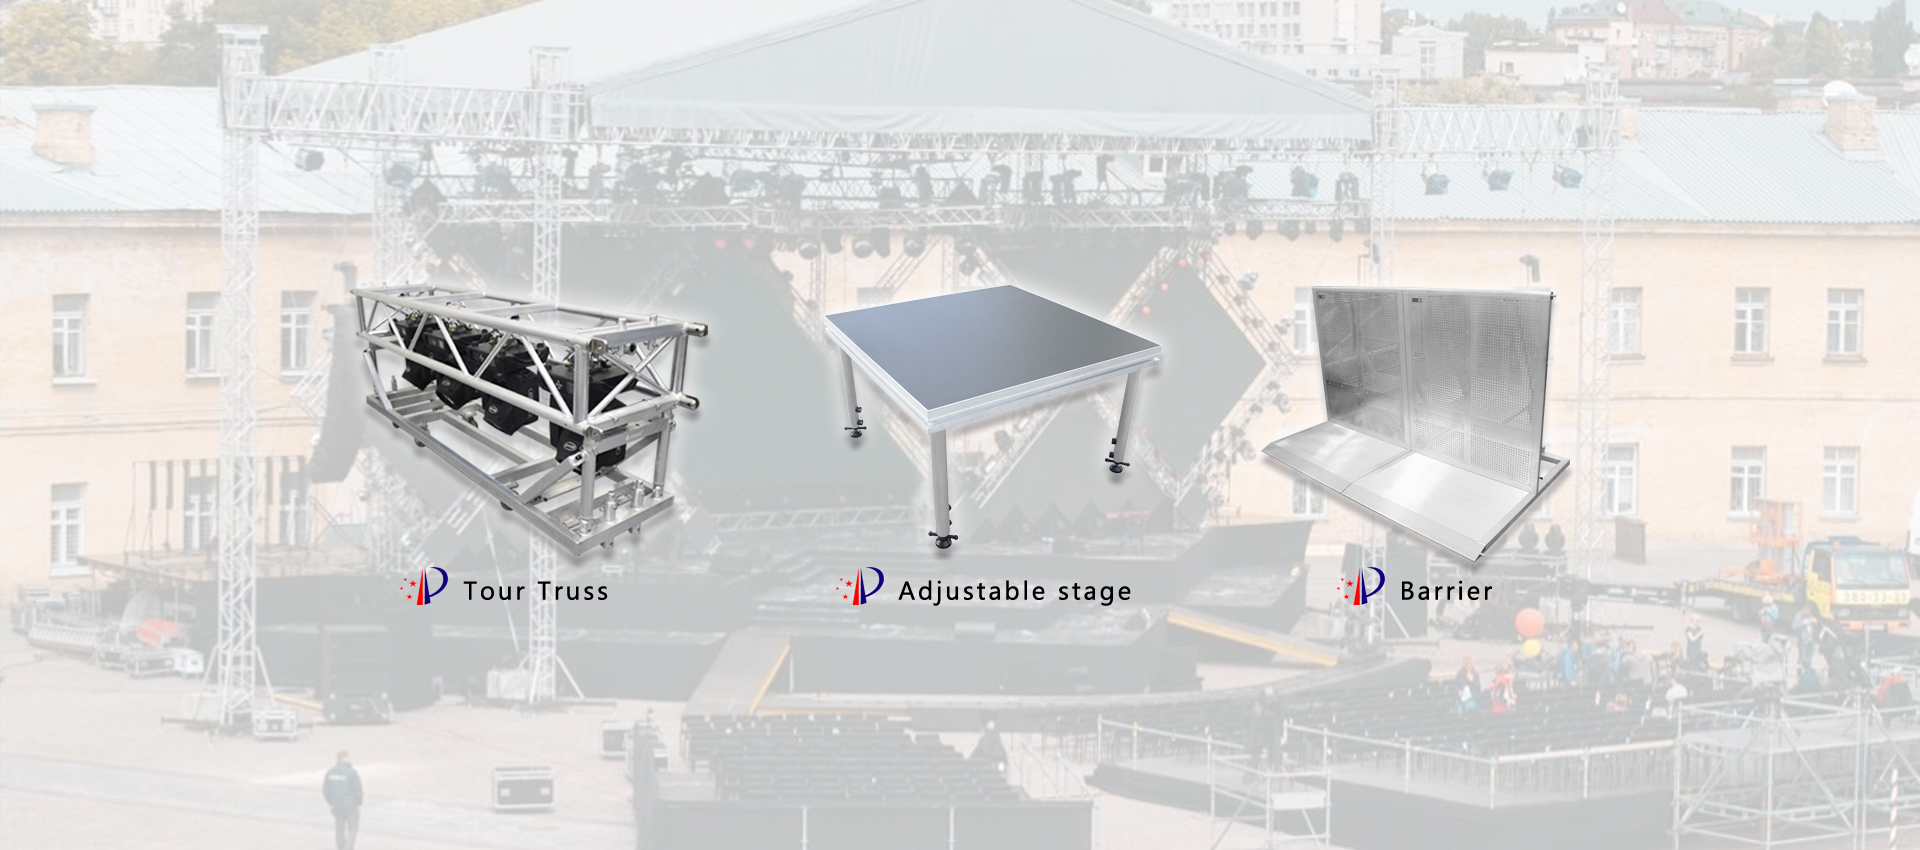 Shinestage Company Products